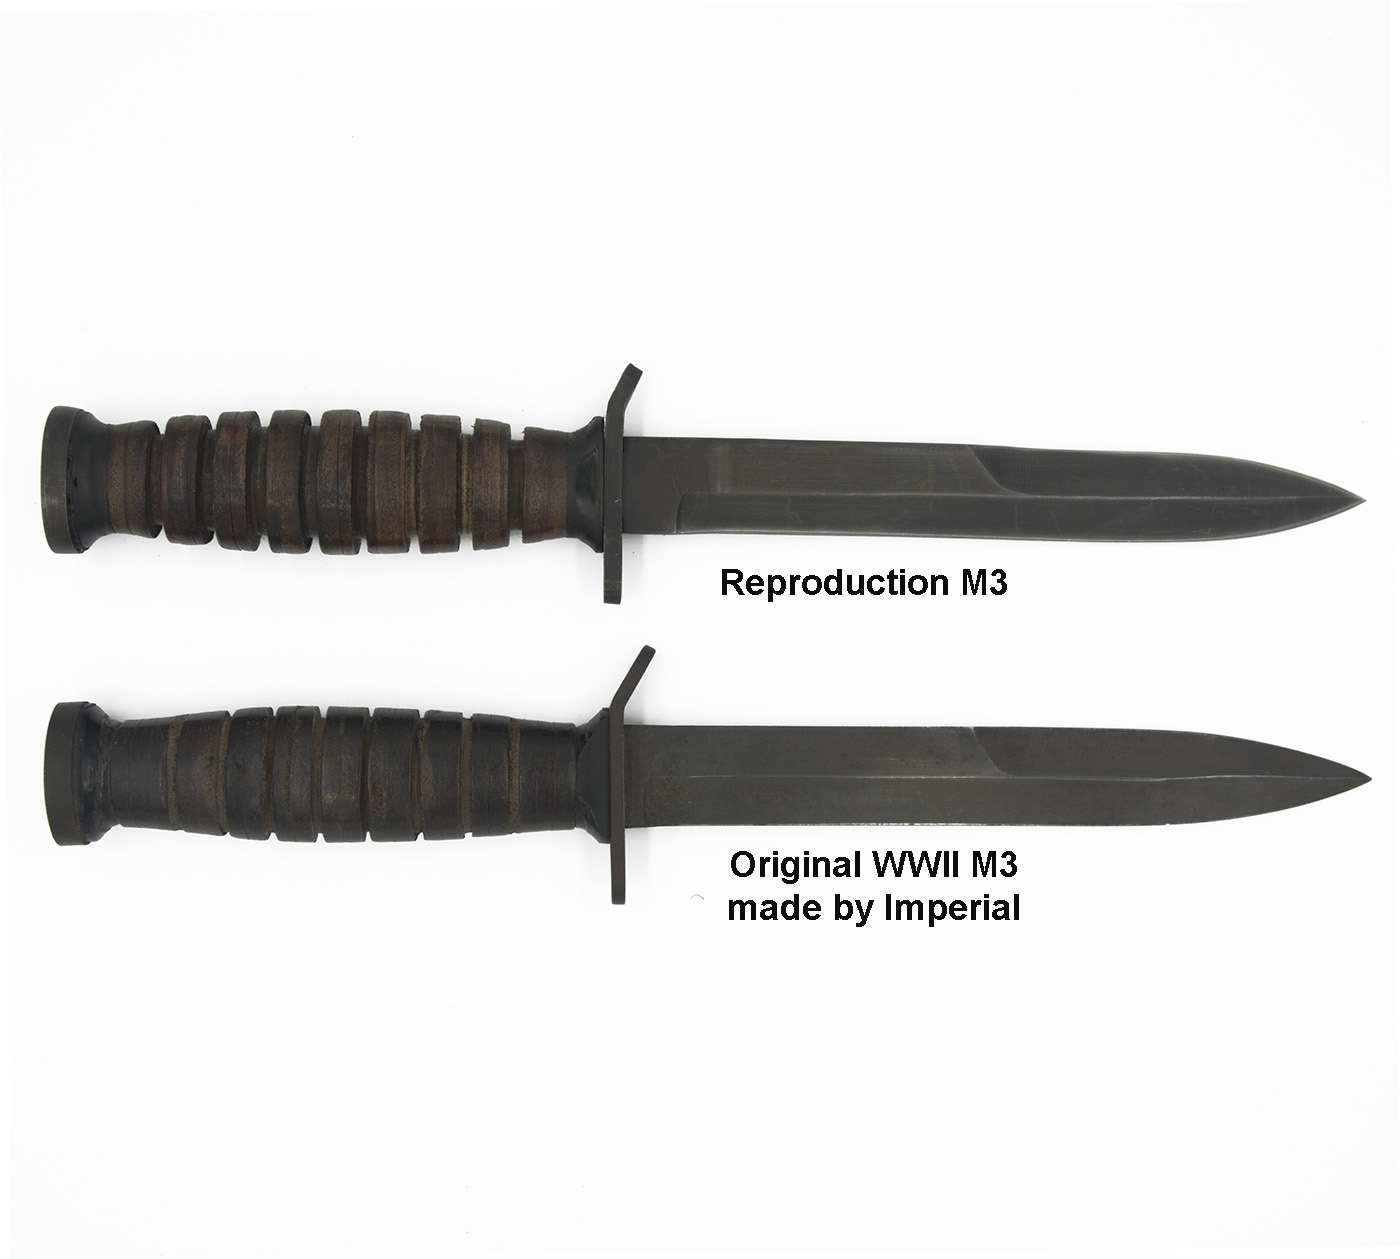 M3 Trench Knife